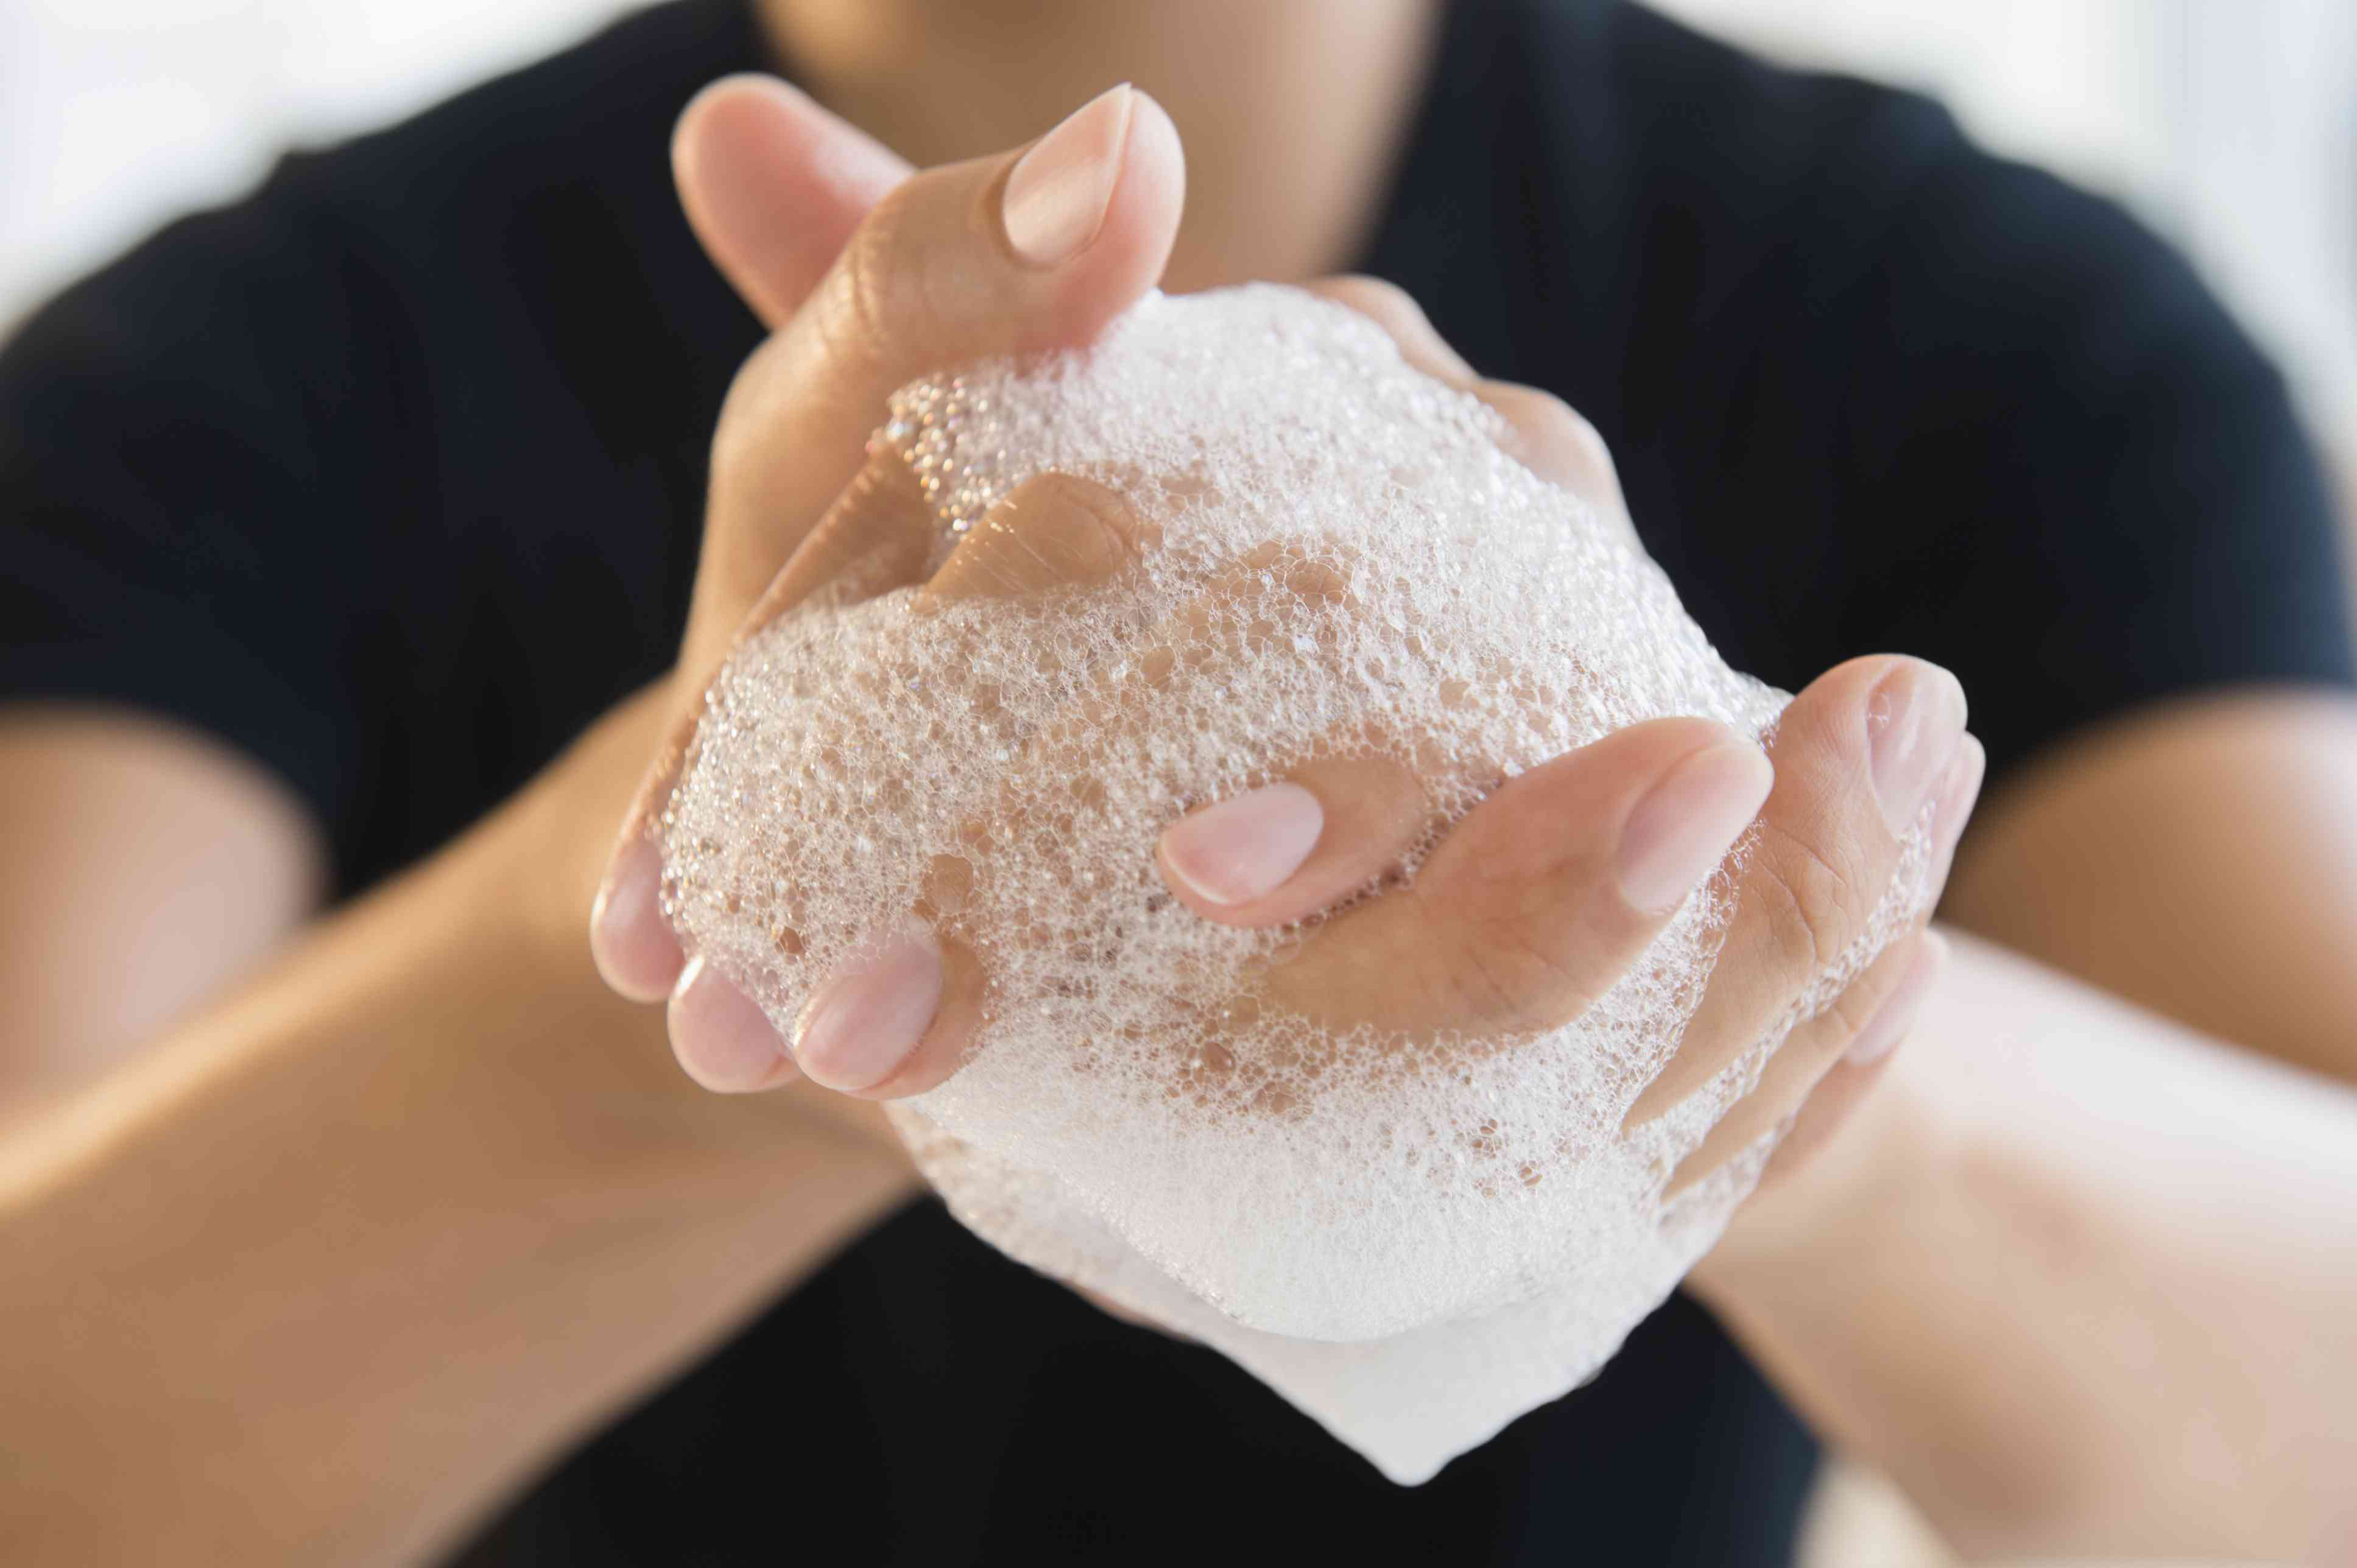 Man washing hands with antibacterial soap